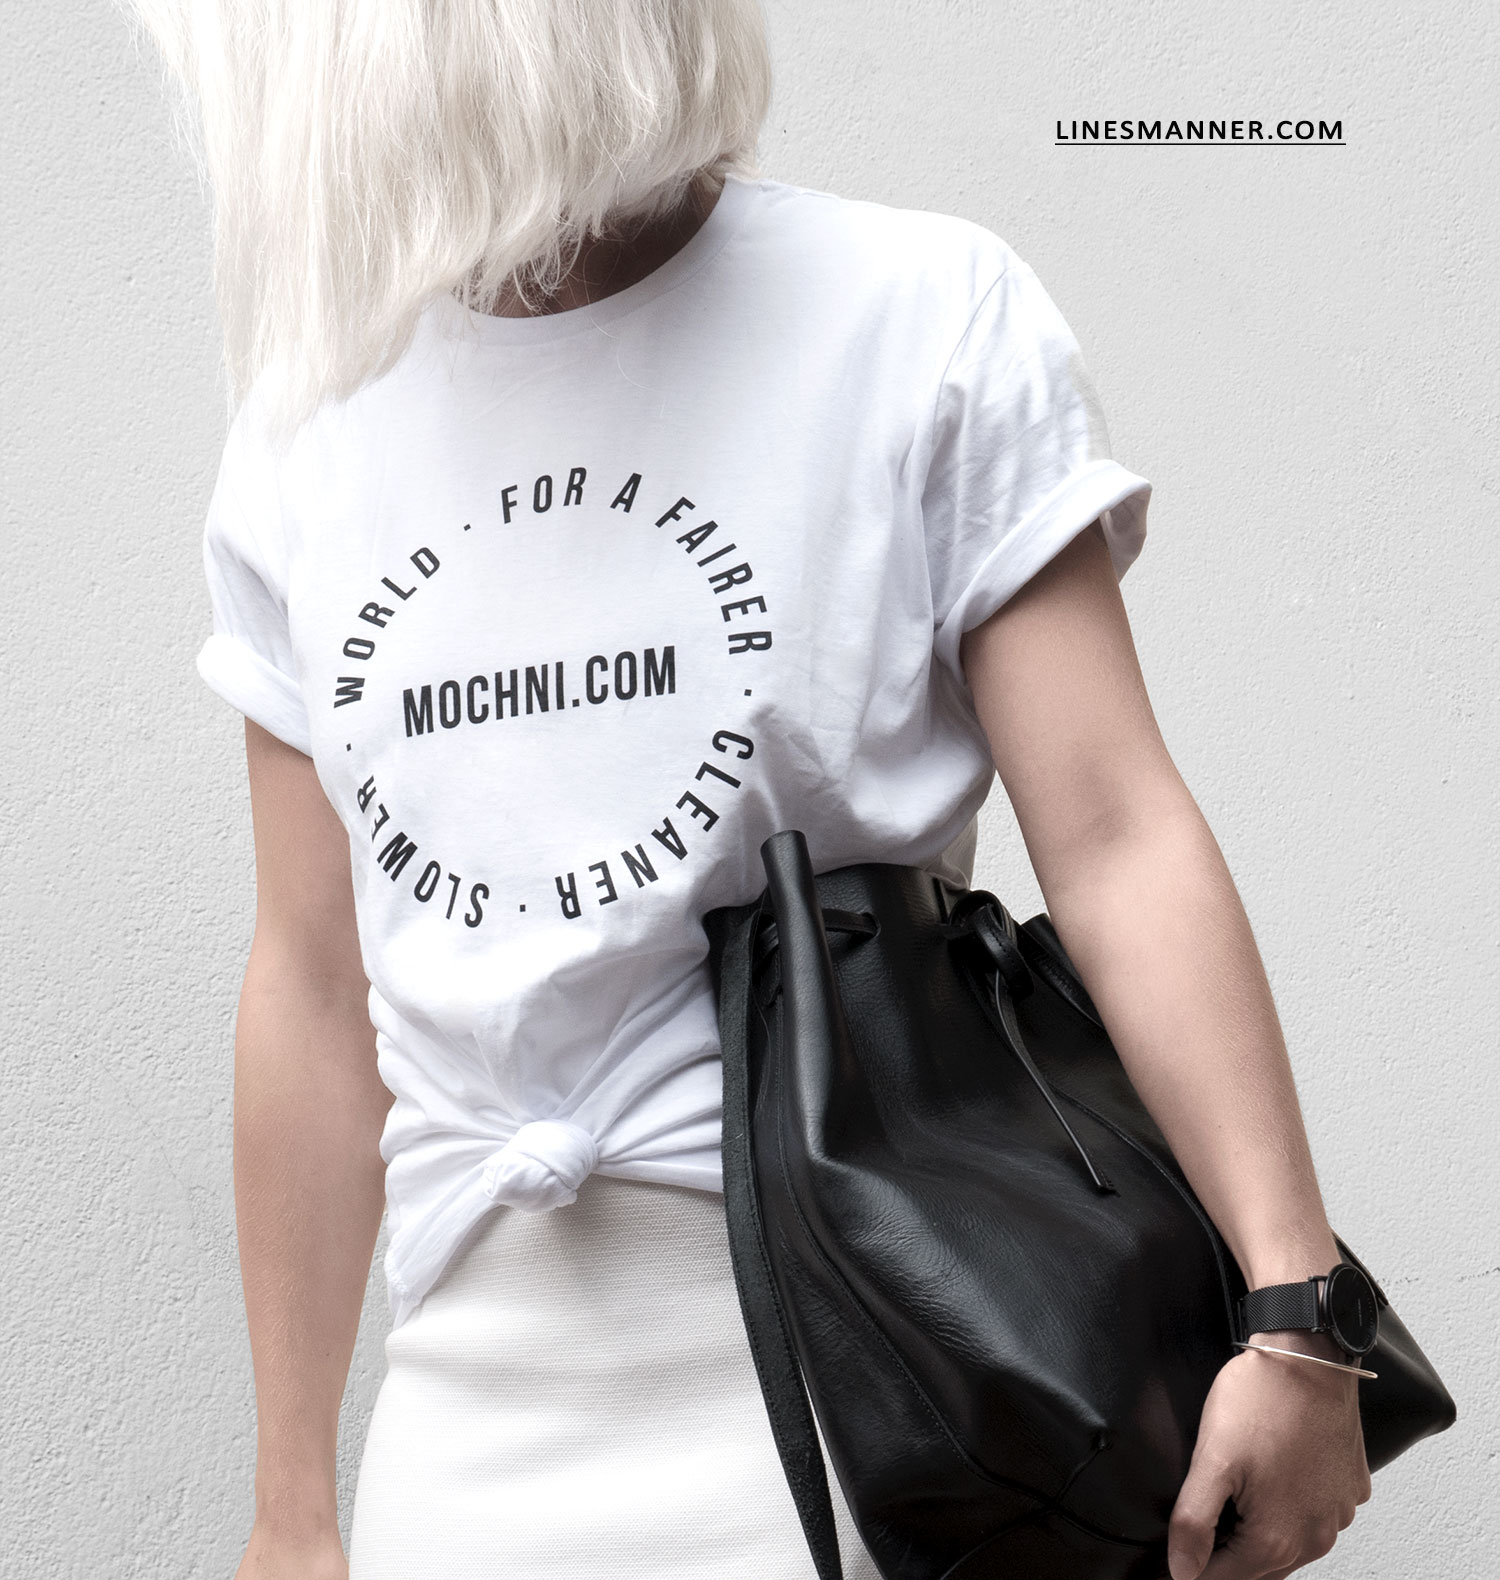 Lines-Manner-Mochni-Slow_Fashion_Plateform-Sustainable-Eco_Fashion-Awareness-Tee-Fairer-World-Conscious-Essentials-Minimal-Monochrome-Quality-Organic-2